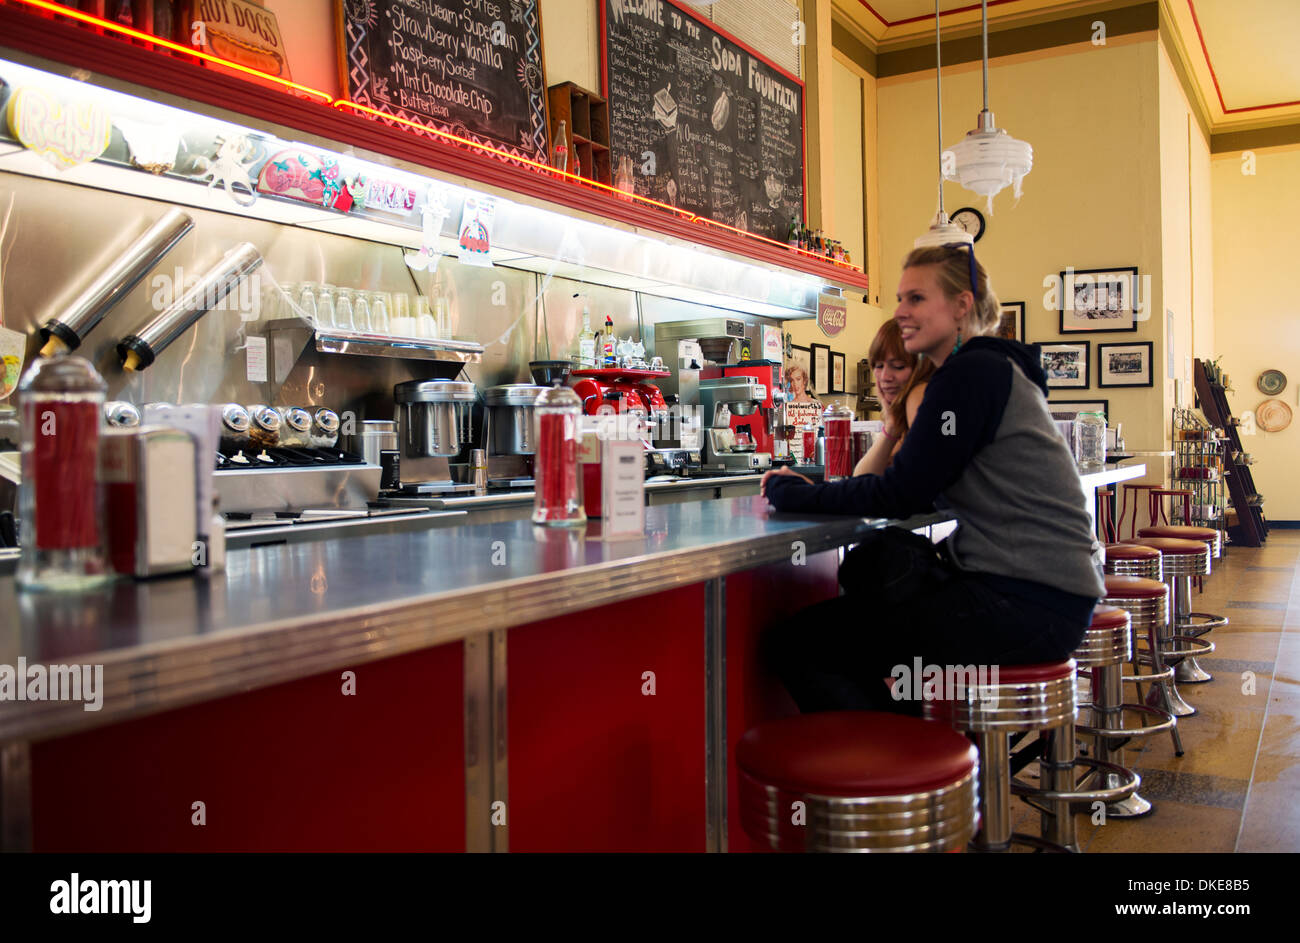 The Historic Woolworth S Soda Fountain In Asheville North